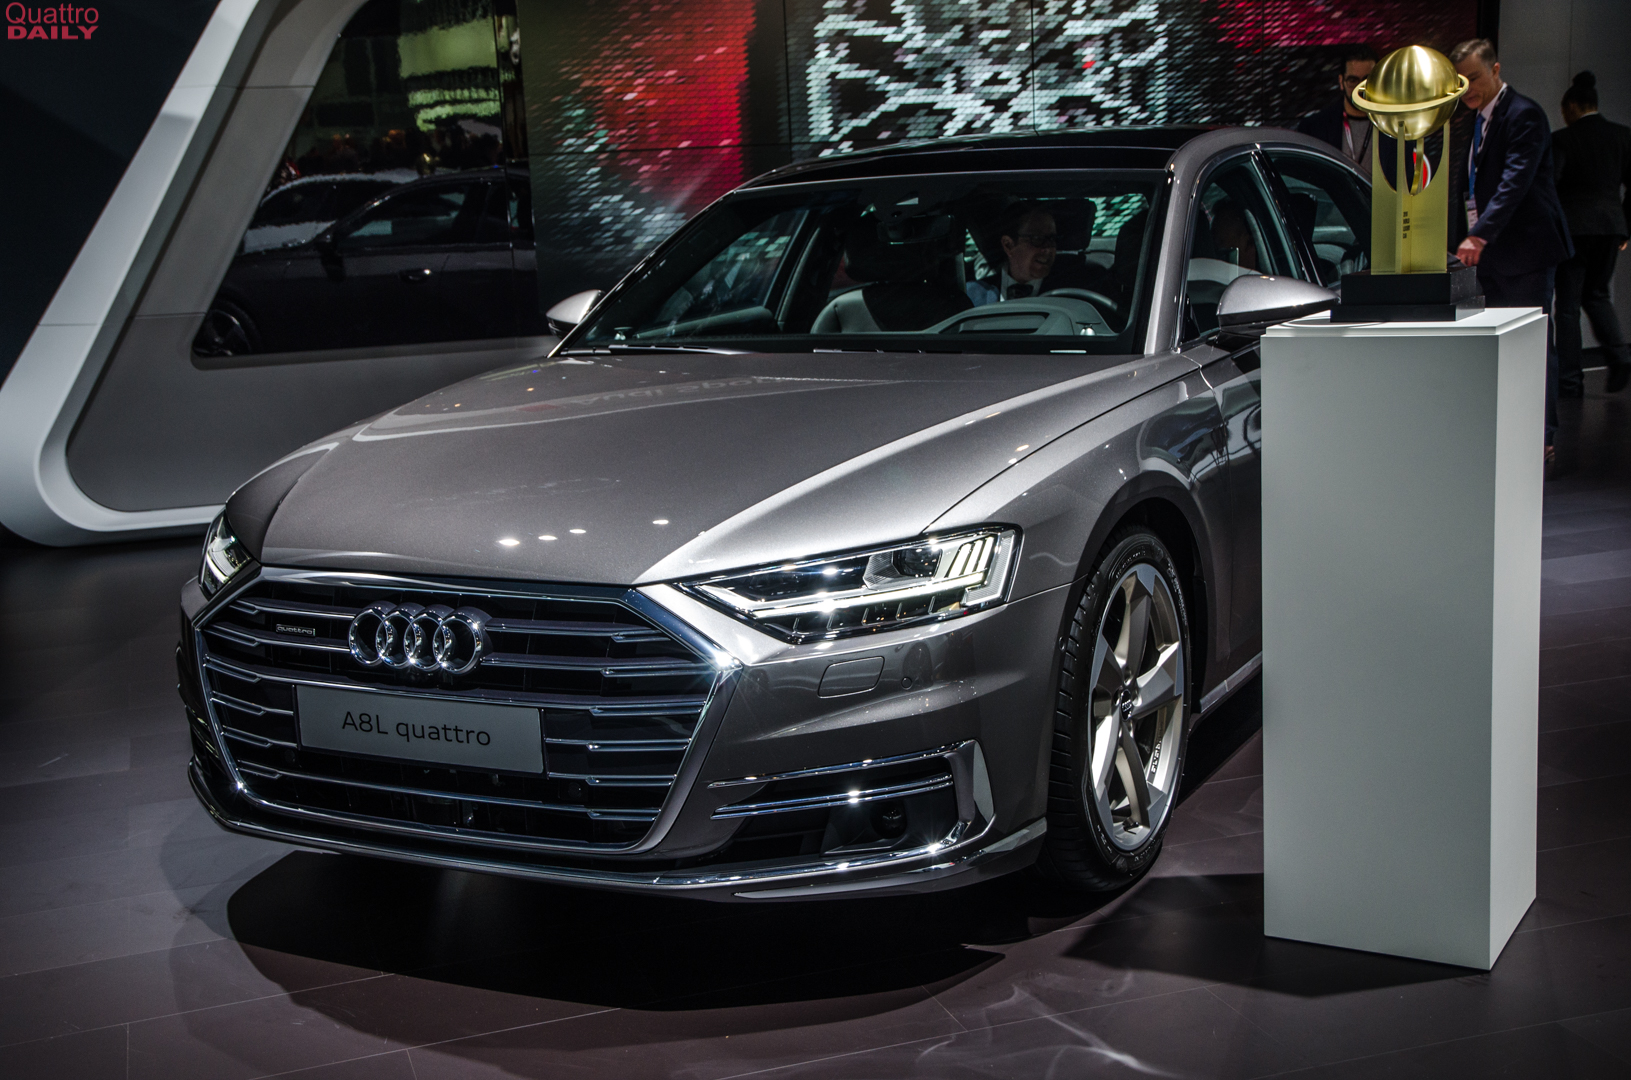 Audi A8 wins World Luxury Car of the Year